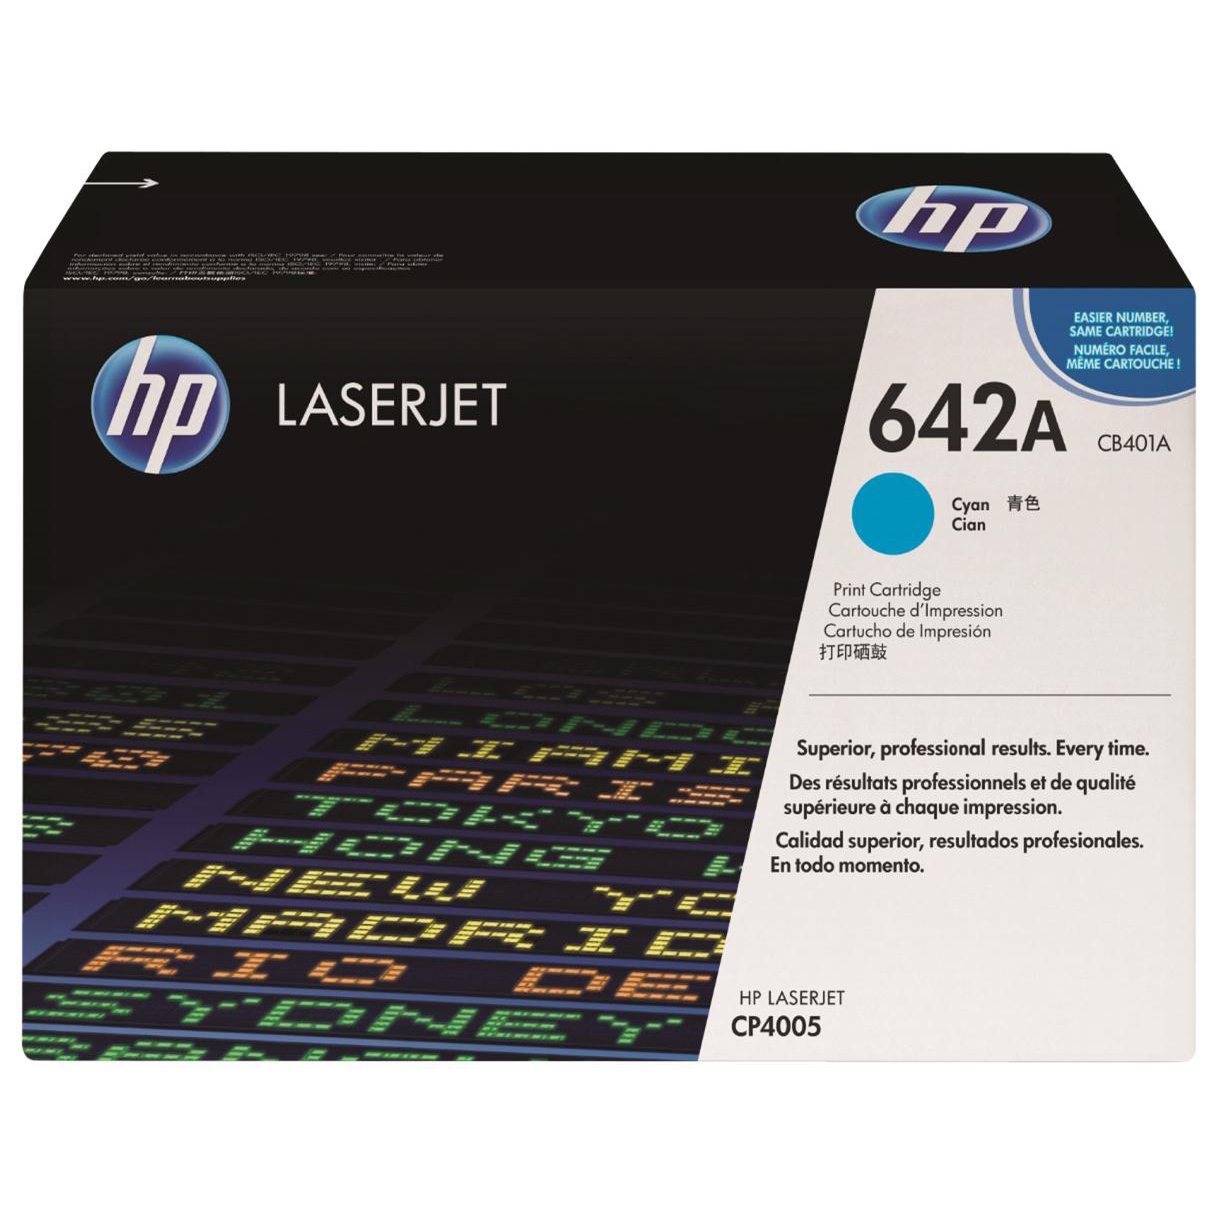 HP 642A Laser Toner Cartridge Page Life 7500pp Cyan Ref CB401A